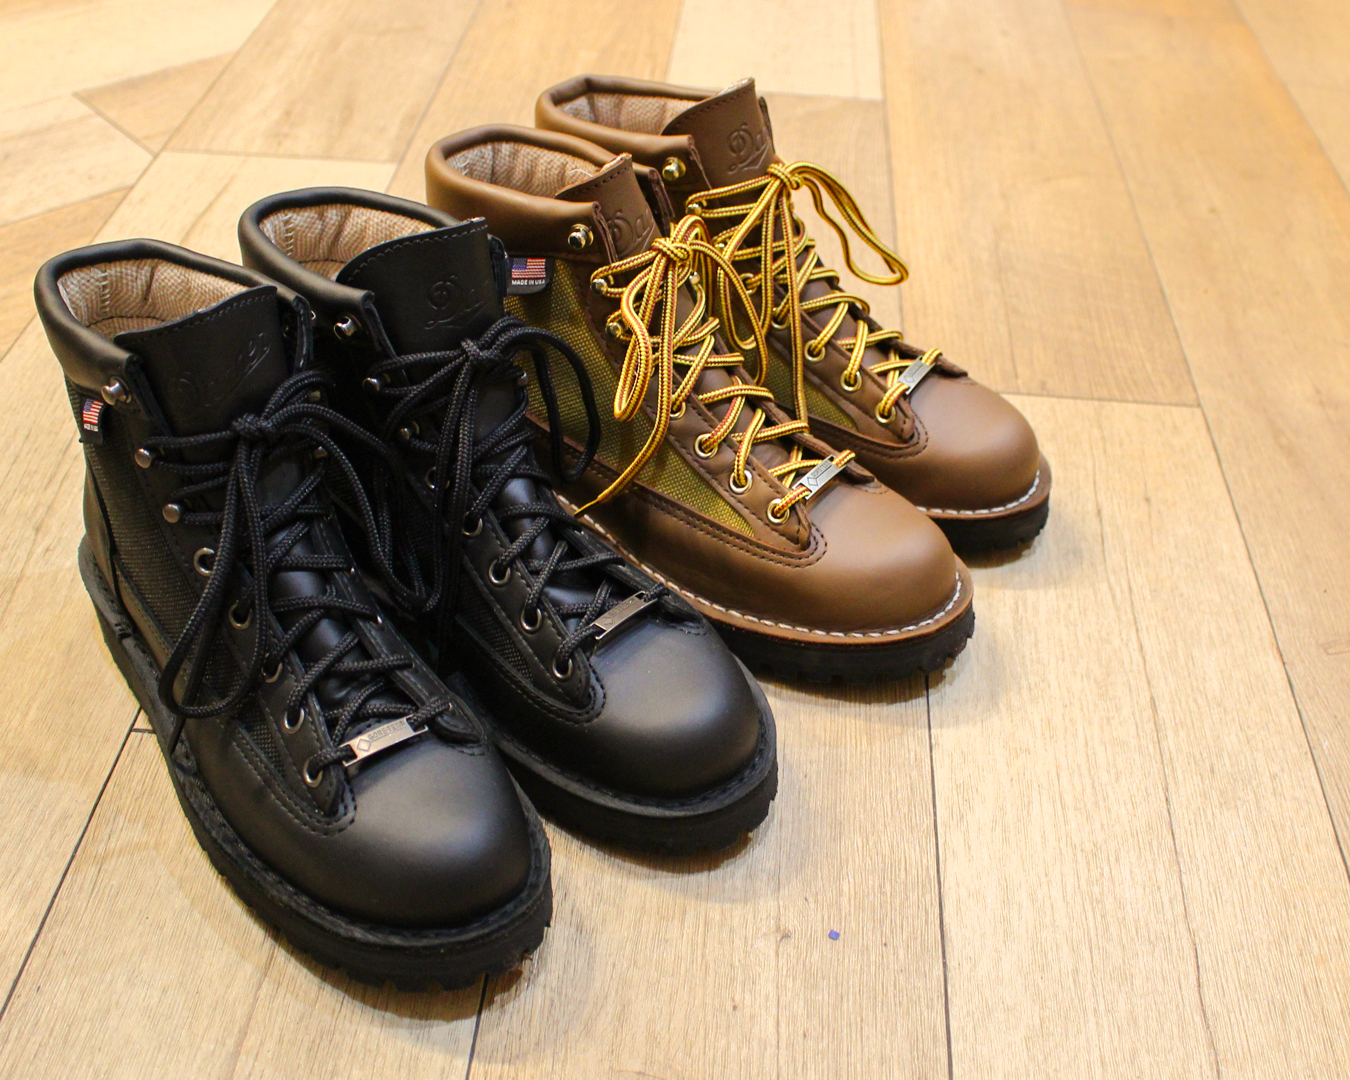 2017.01.21 WOMEN'S DANNER LIGHT【naval本店】